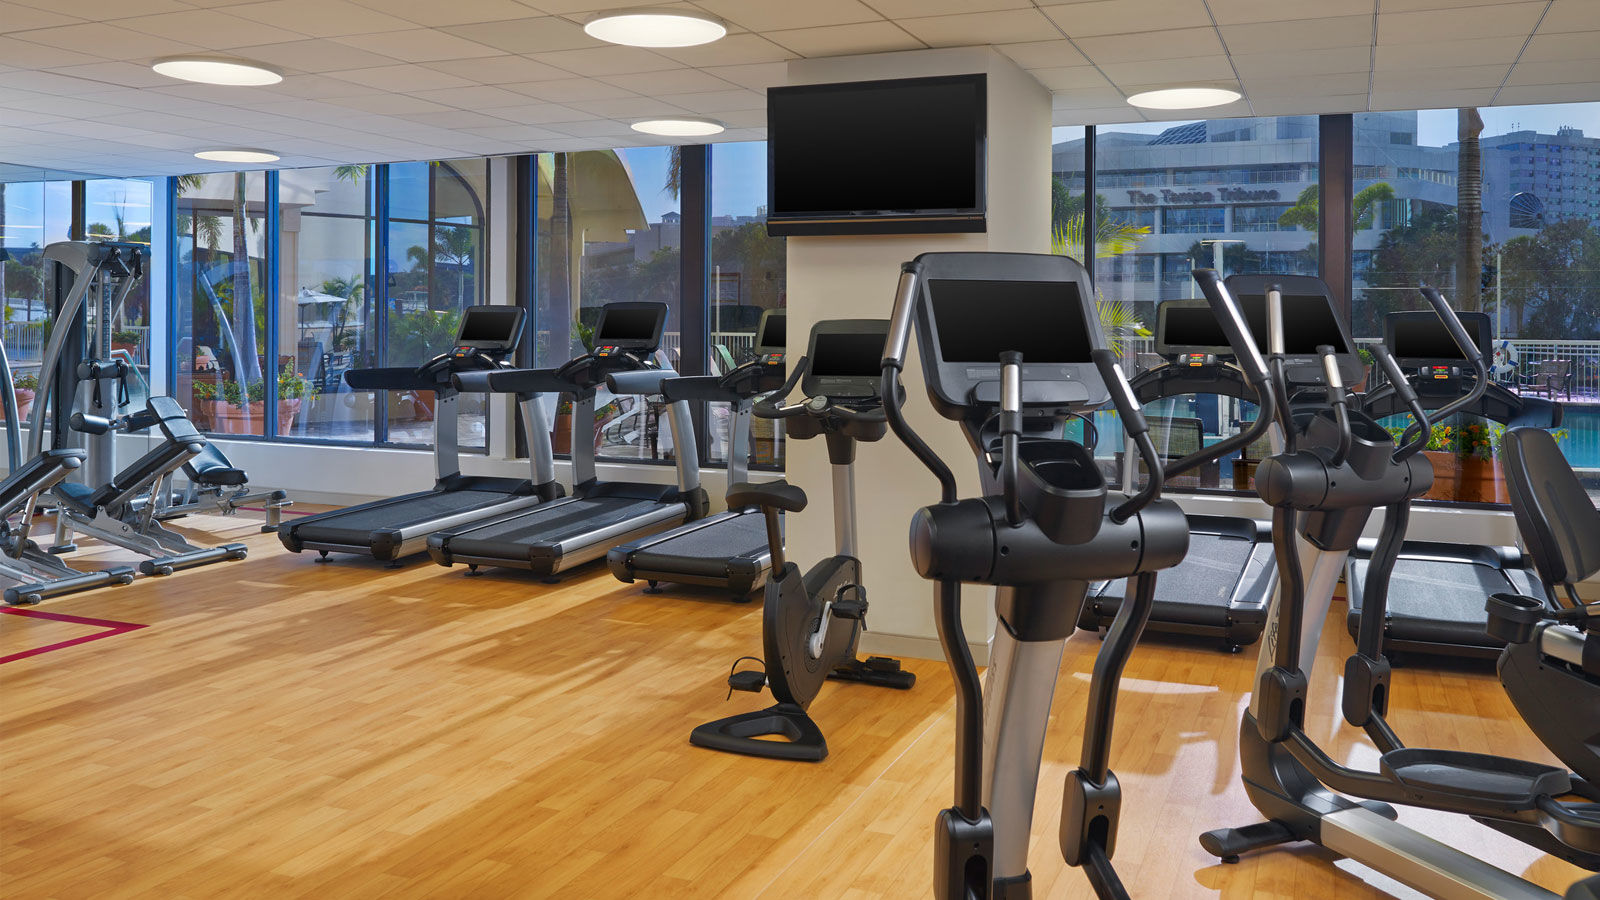 Sheraton Tampa Riverwalk - Fitness Center